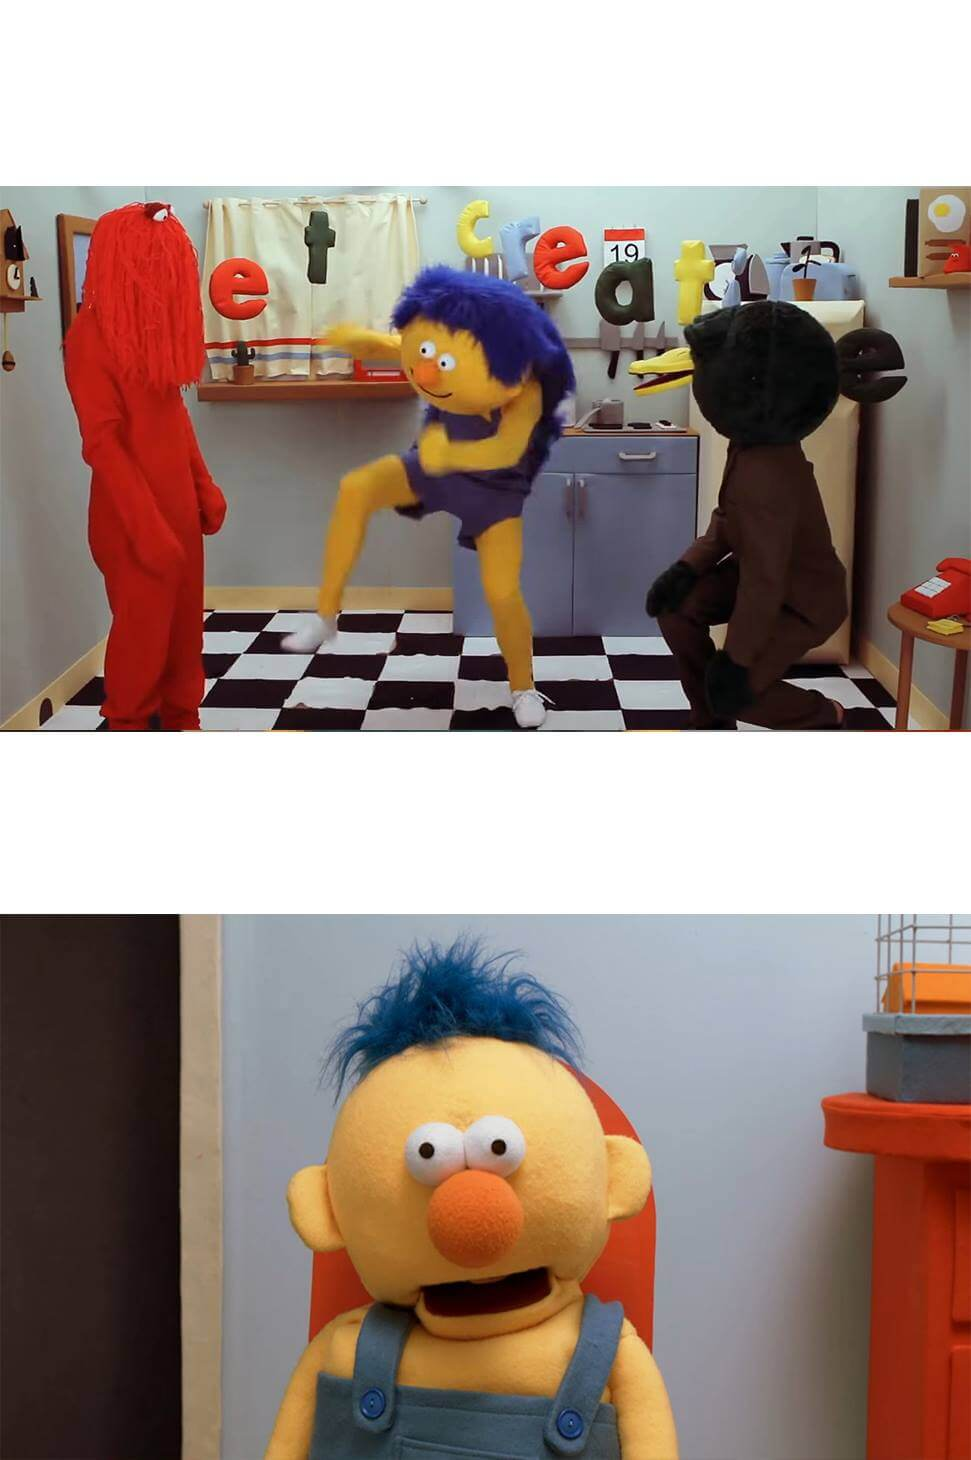 Ir a la pagina de la plantilla Yellow Guy bailando| Yellow Guy sorprendido.